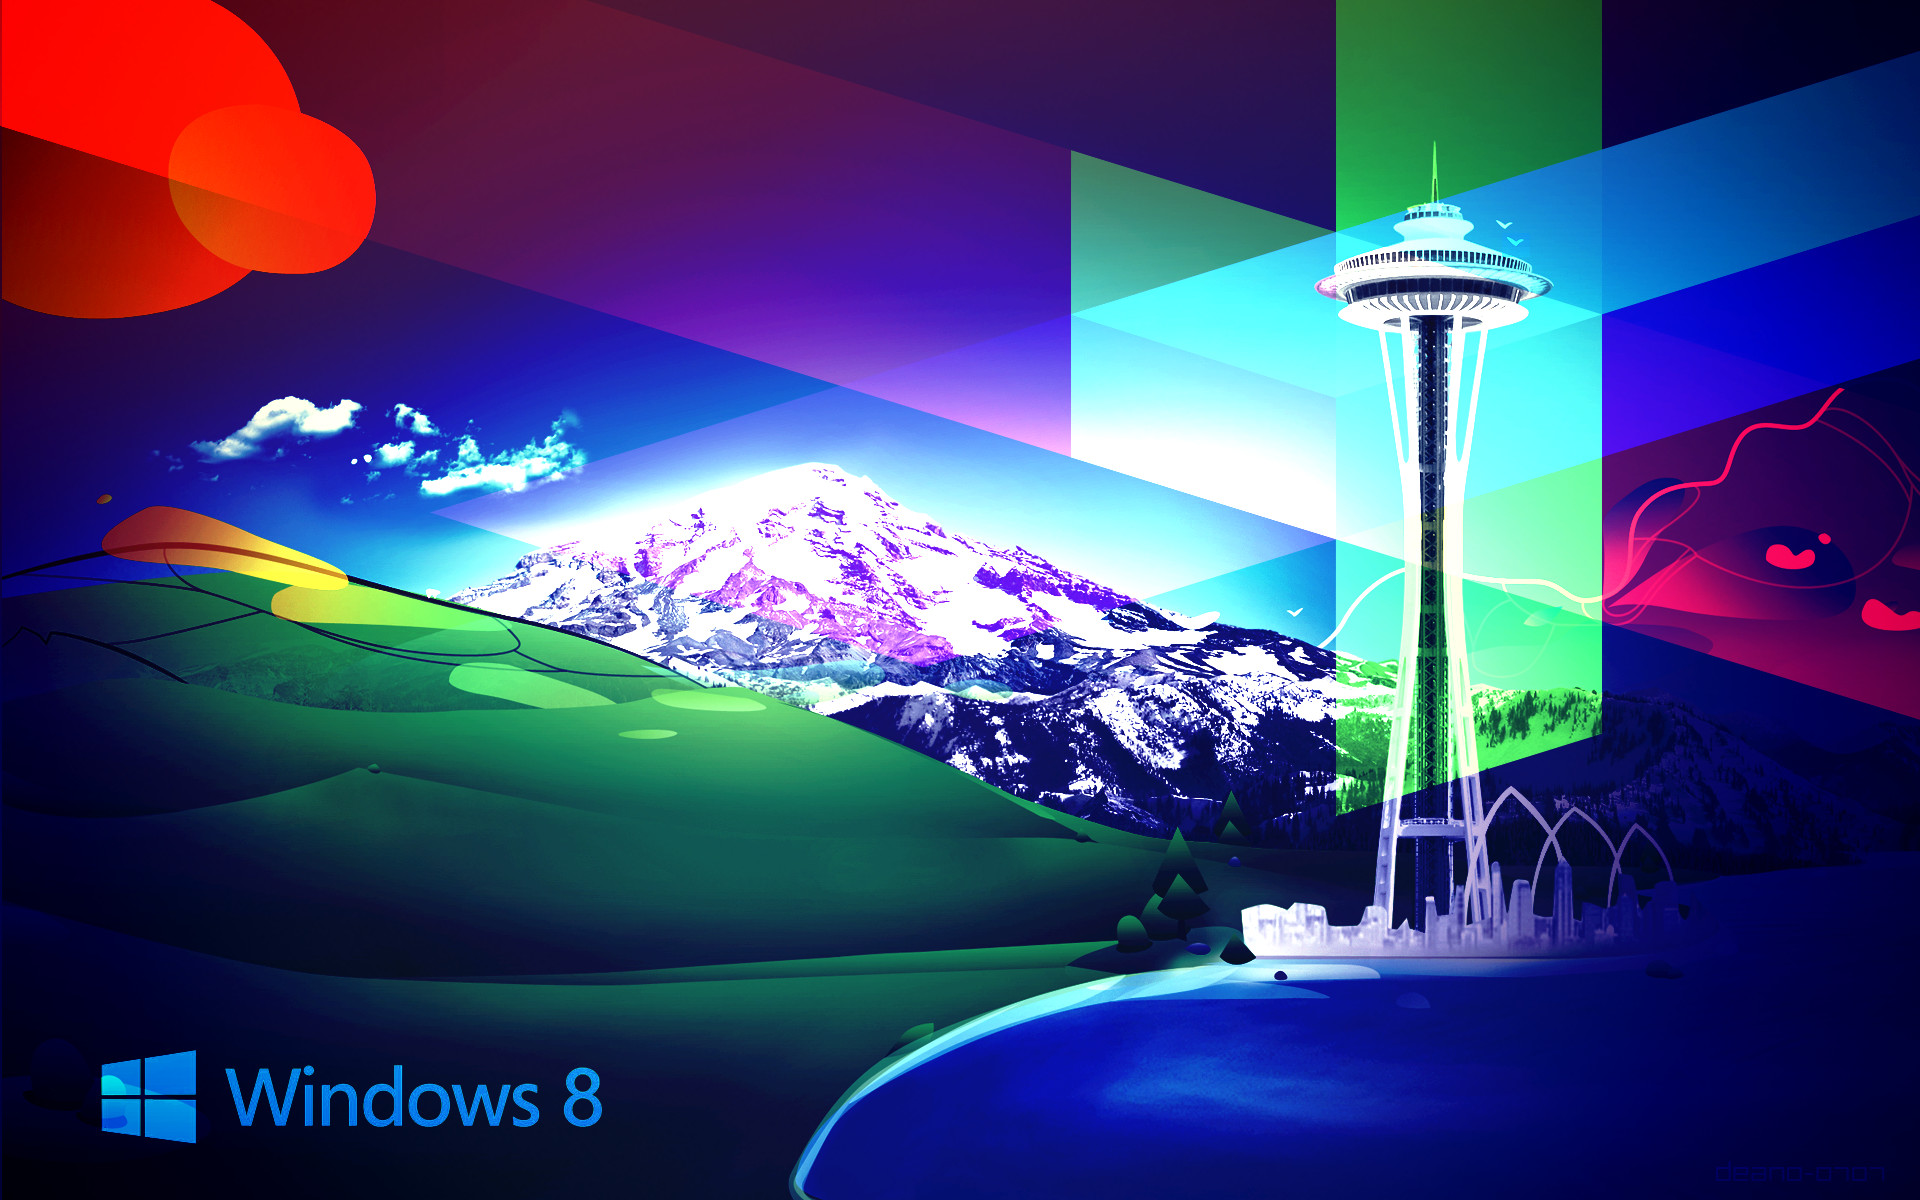 3d live wallpaper for pc windows 8.1